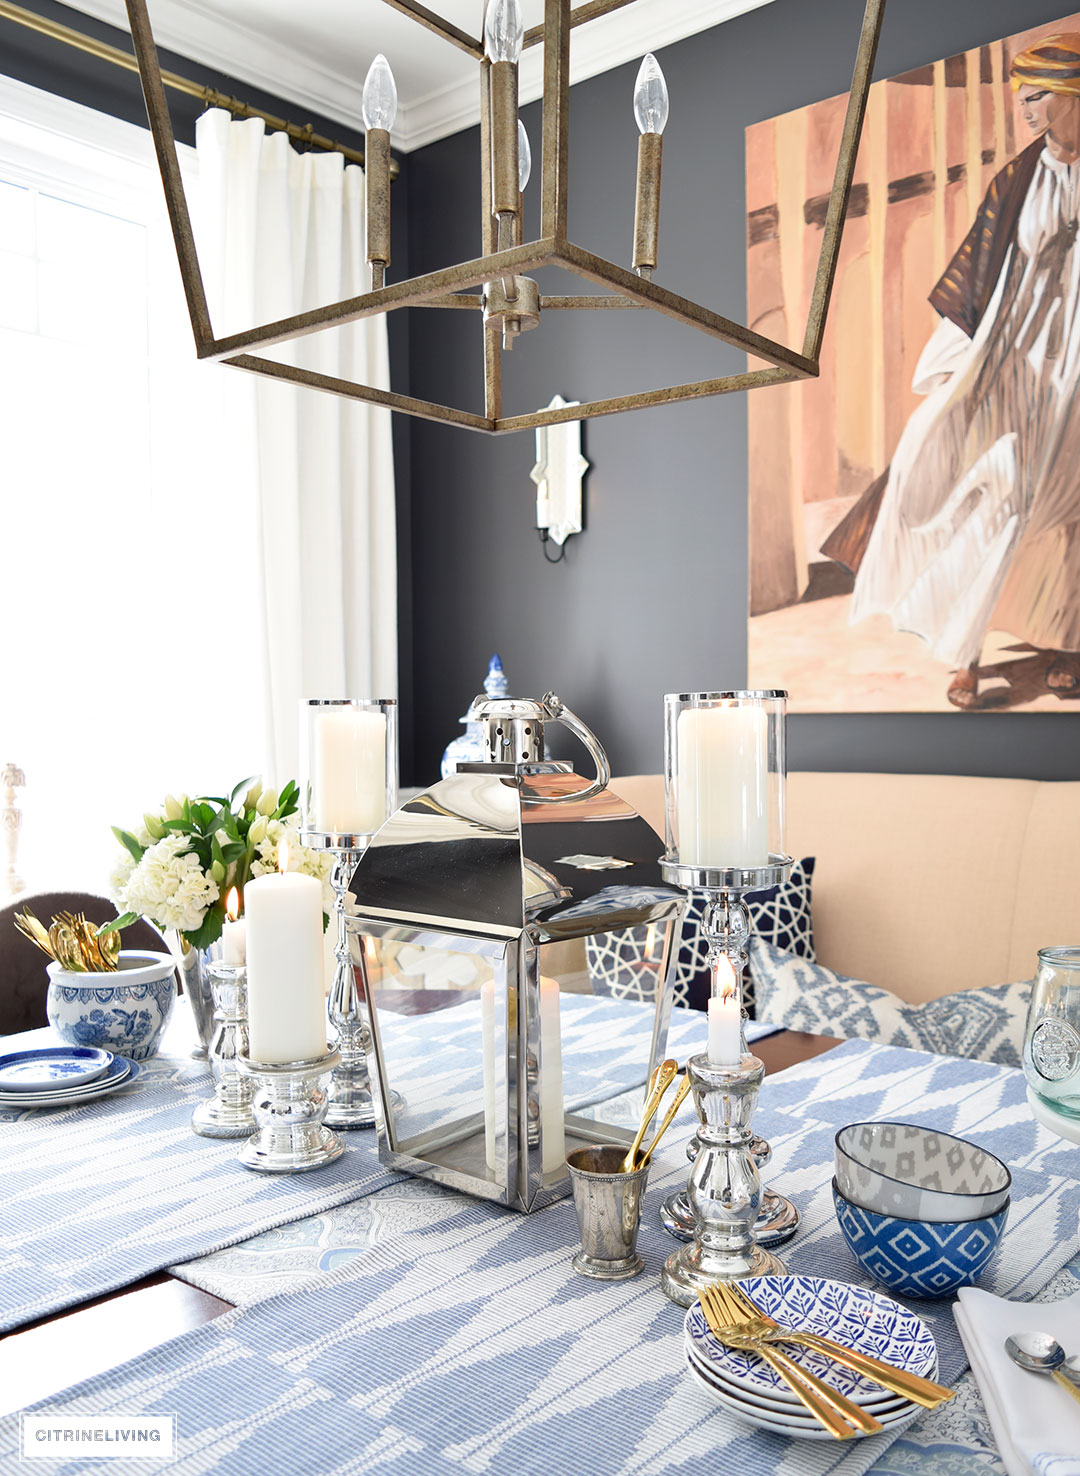 Spring table - a fresh mix of blue and white pattern and texture is perfect for the season.